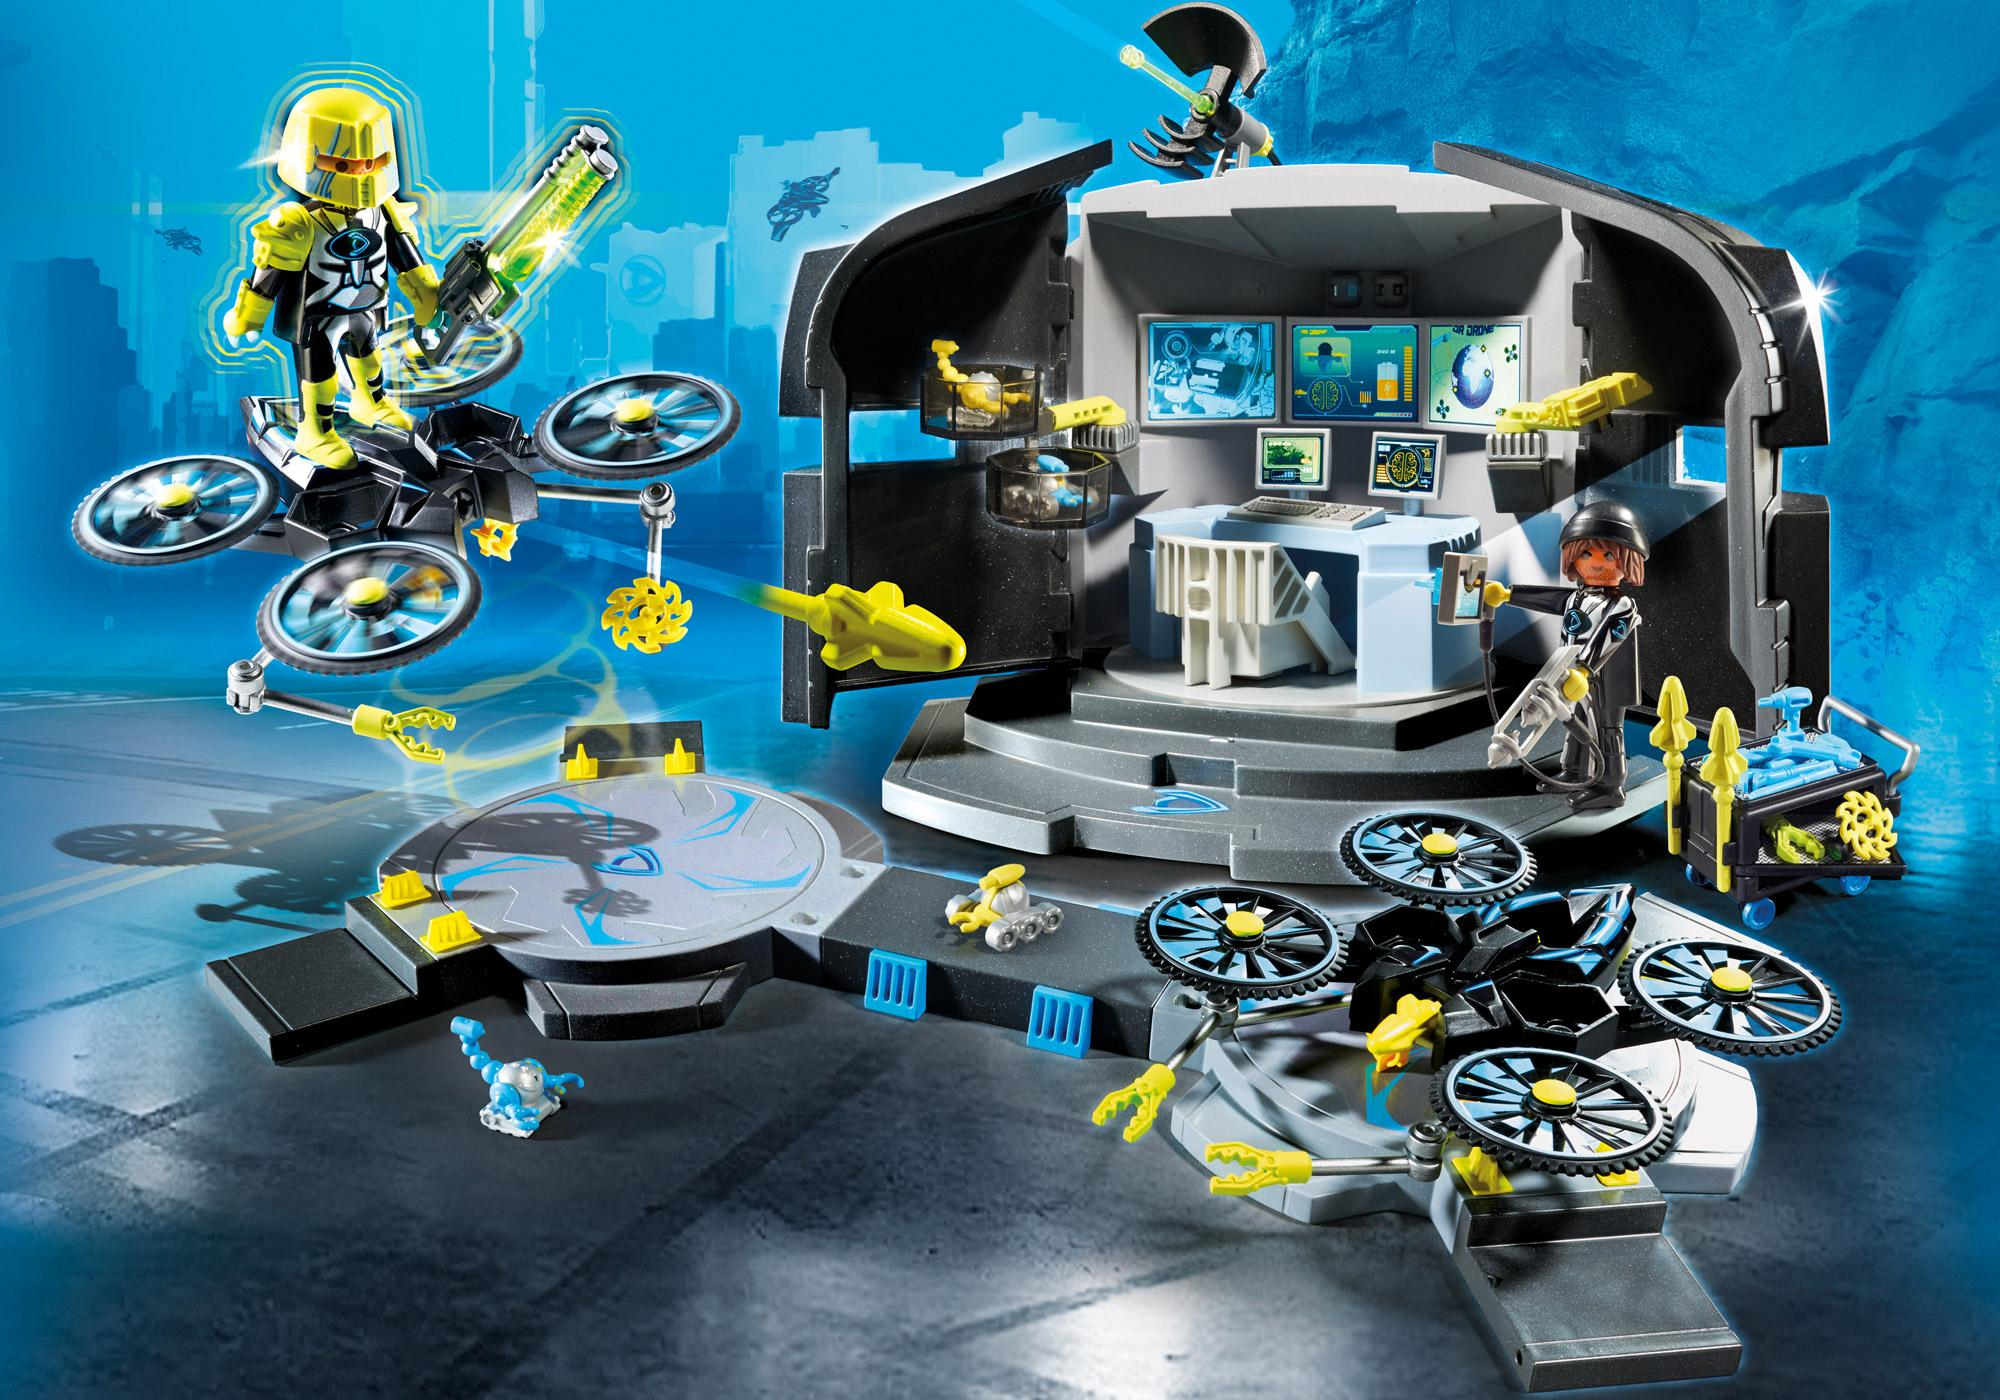 http://media.playmobil.com/i/playmobil/9250_product_detail/Dr. Drone's Command Base